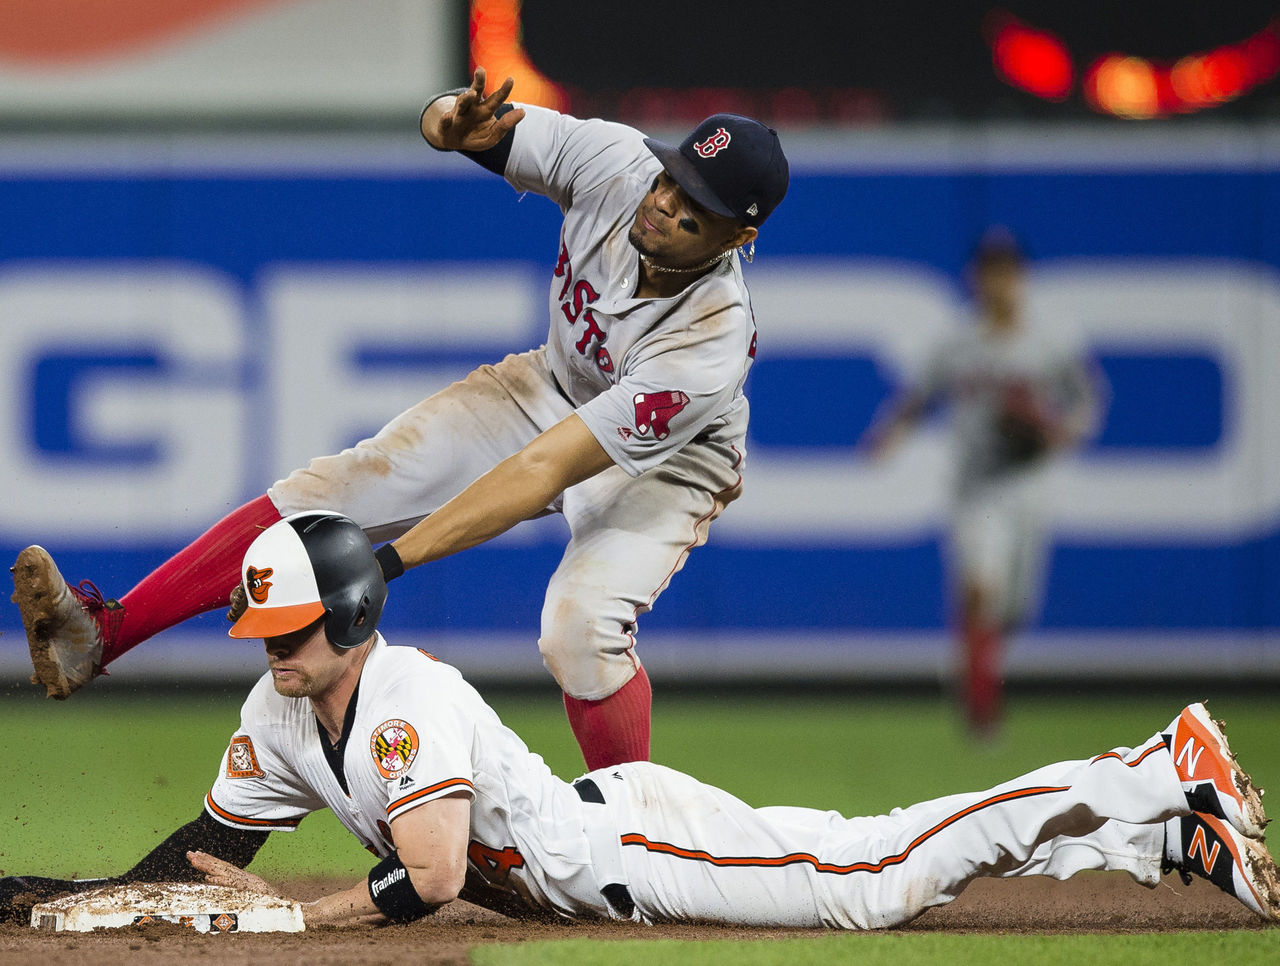 Cropped 2017 09 19t040234z 1092115089 nocid rtrmadp 3 mlb boston red sox at baltimore orioles